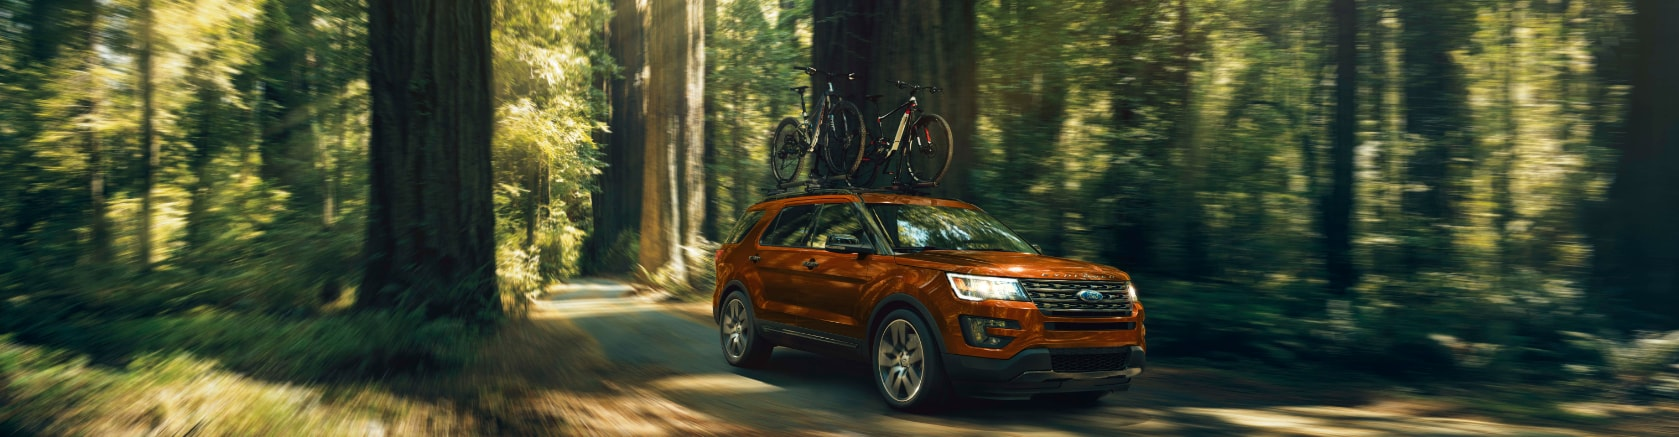 new ford explorer for sale   ruxer ford lincoln inc.